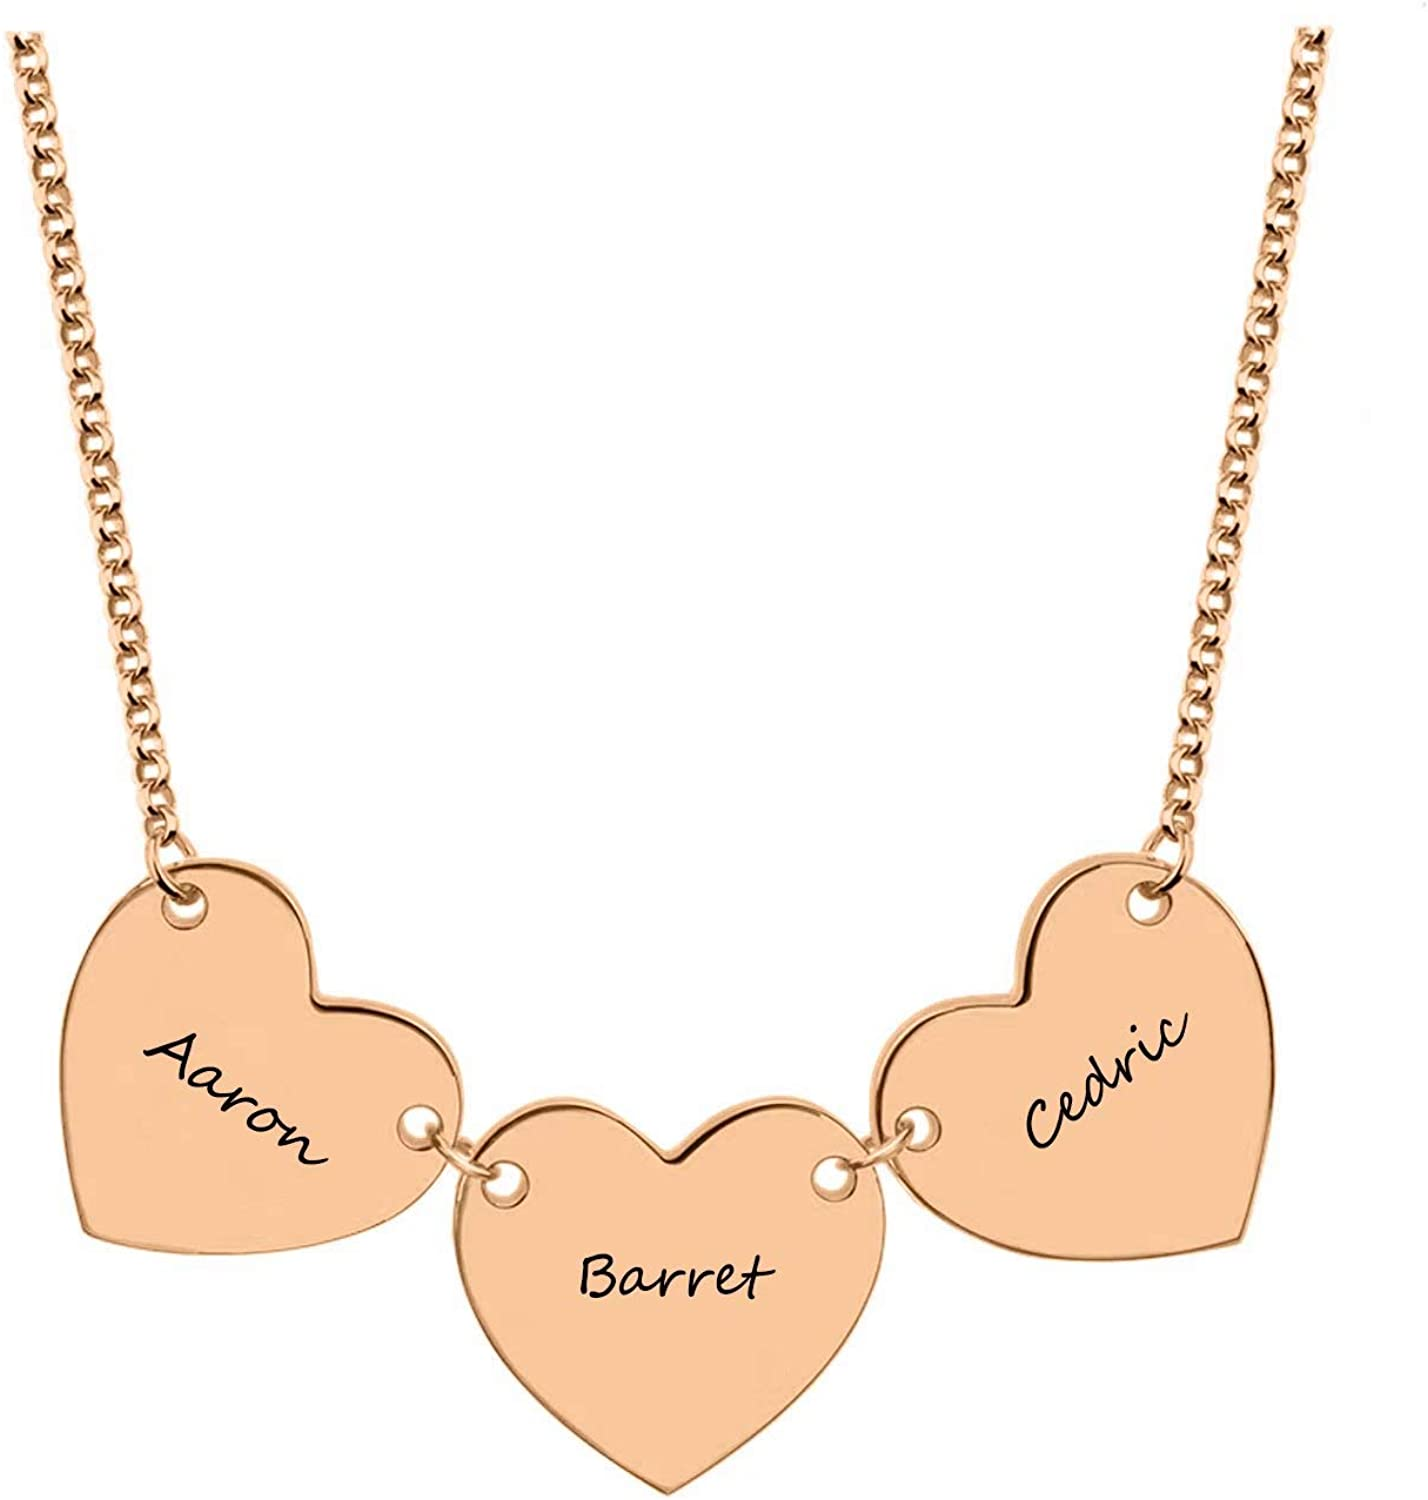 Godchoices Personalized Family Tree Necklace Engraved Name Necklace for Mothers Day Christmas